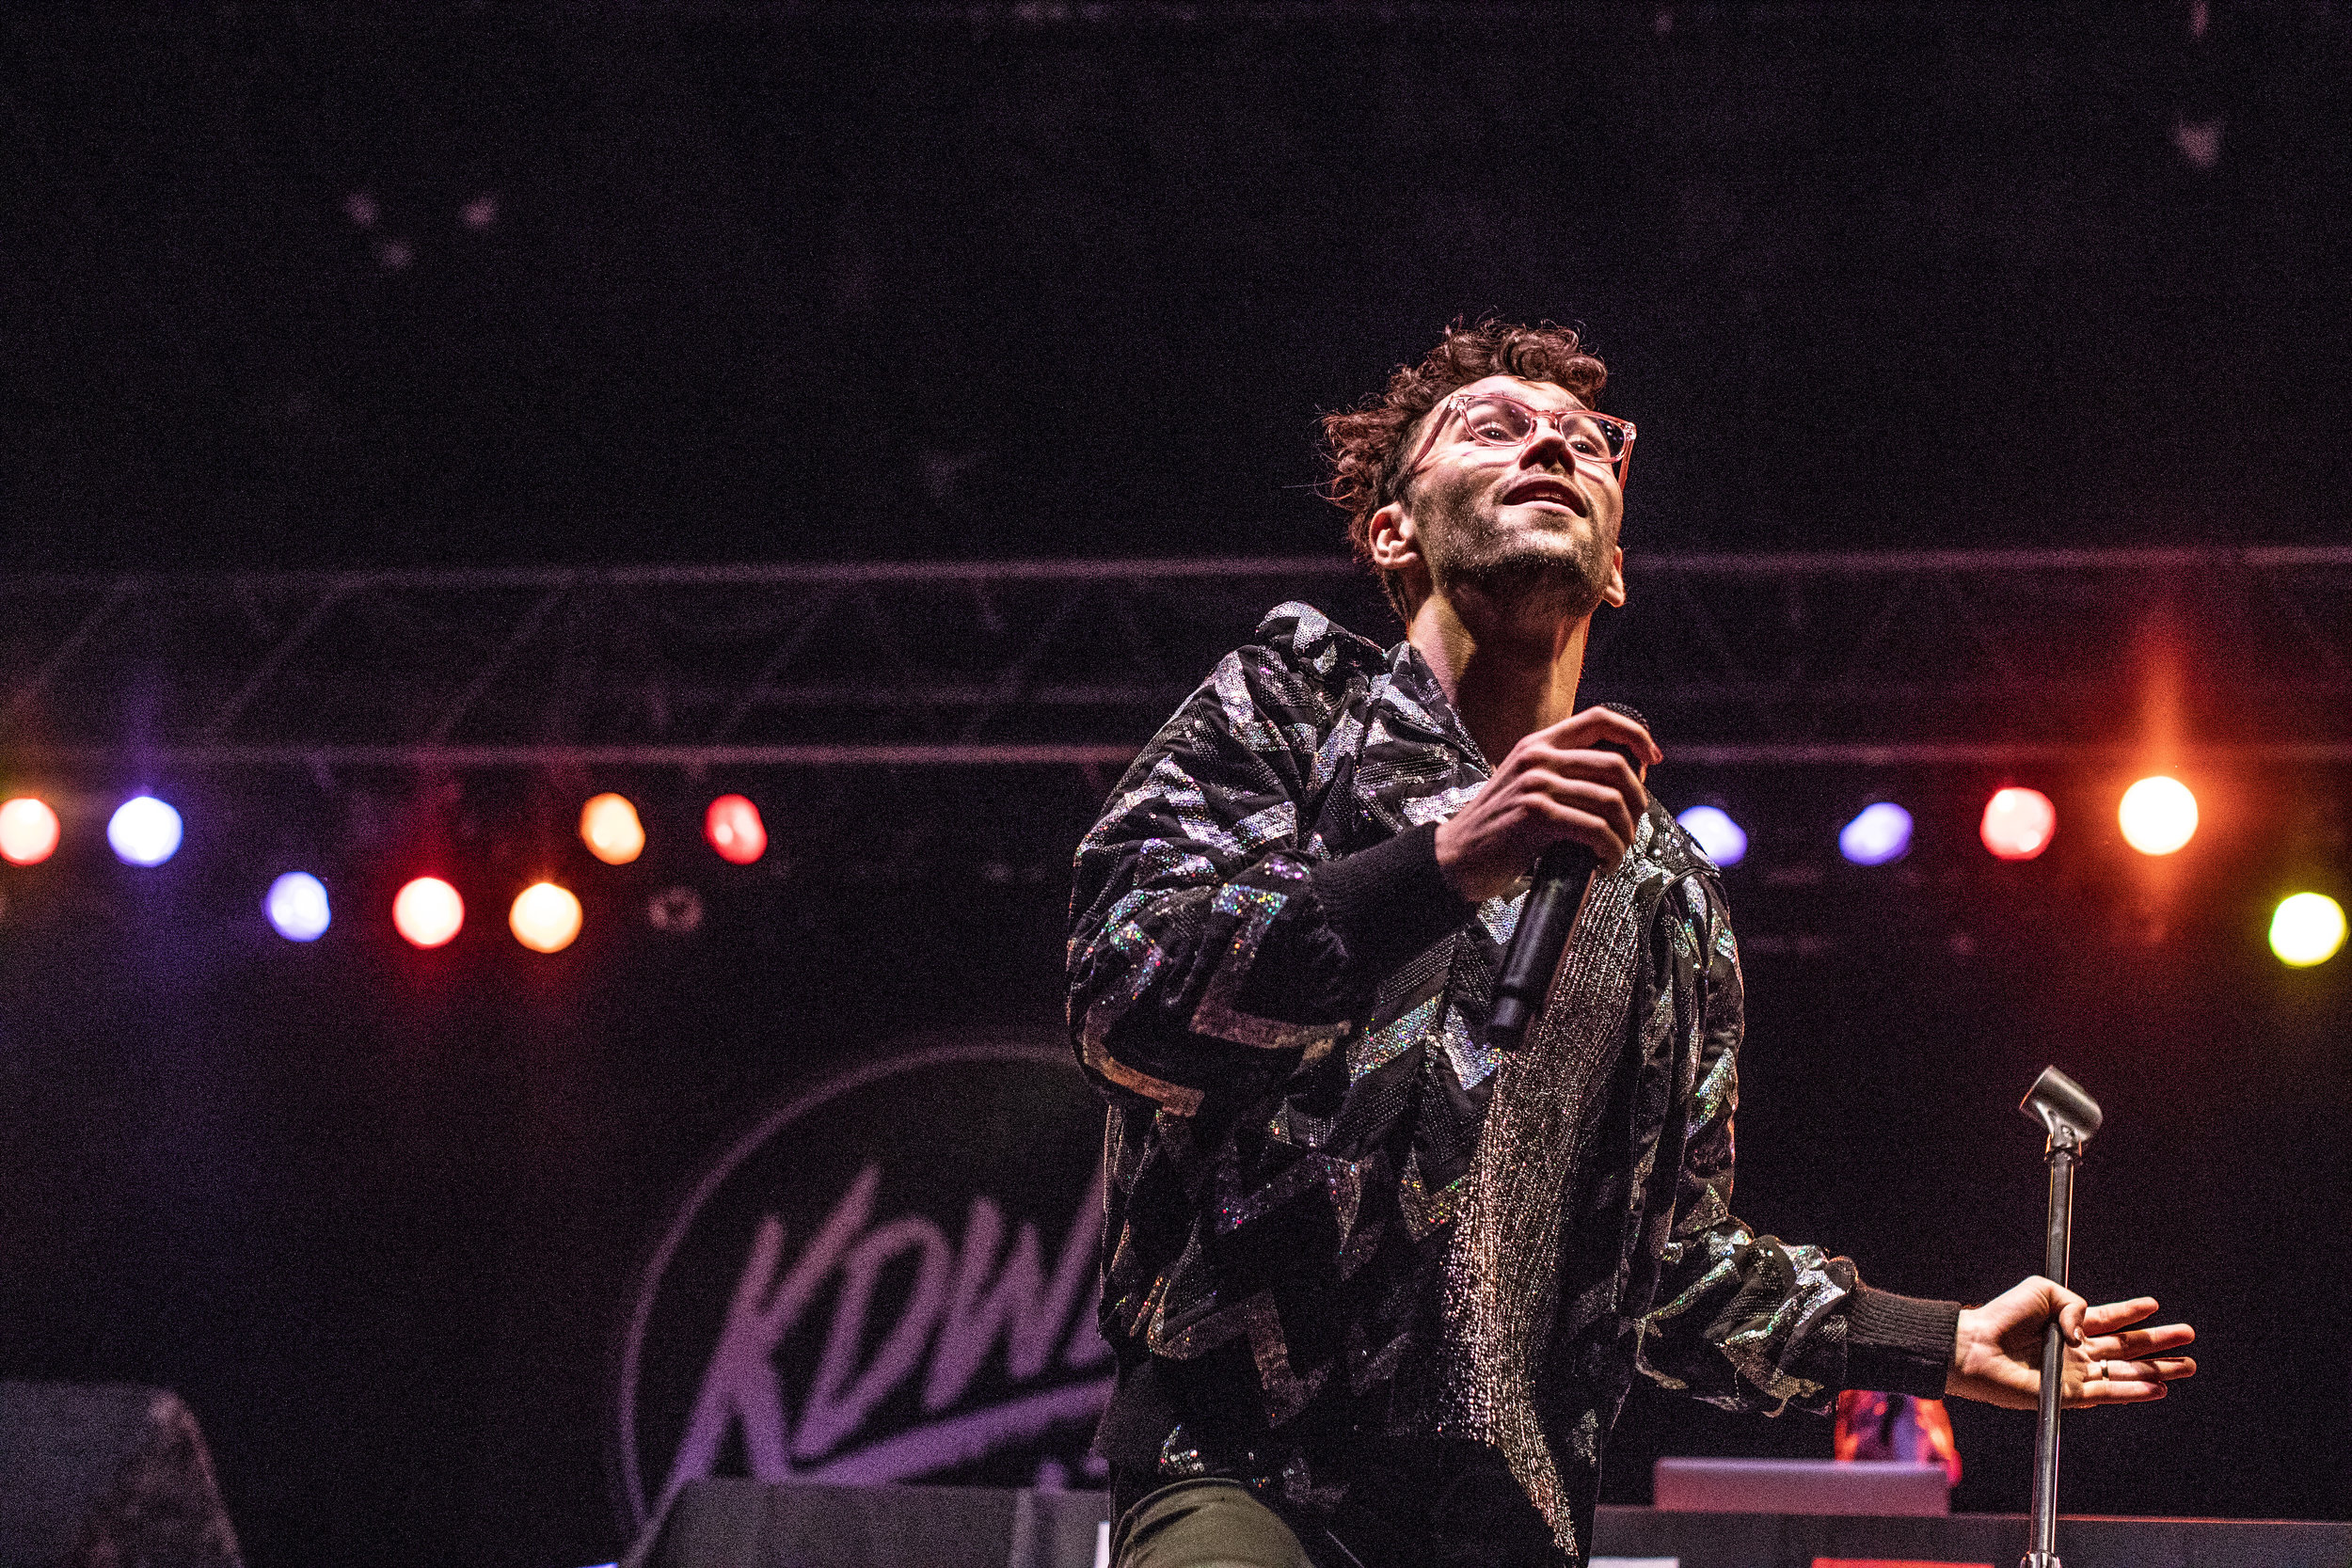 KDWB_StarParty_FlowEventGroup-162.jpg